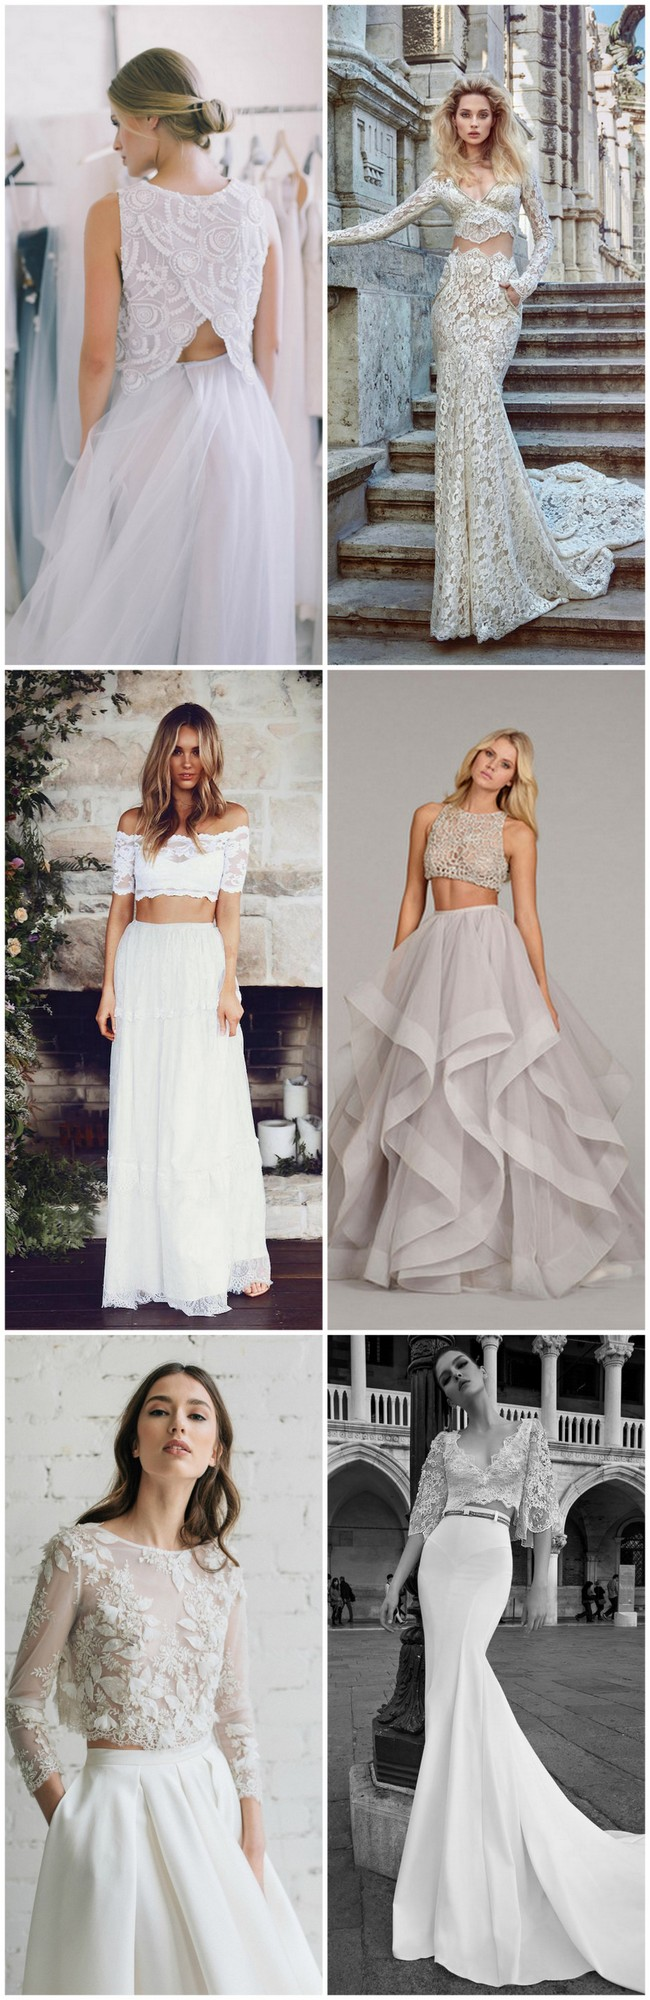 e0e3ab6ea6eb1 Possibly the Most Epic Selection of Two Piece Wedding Dress Bridal ...